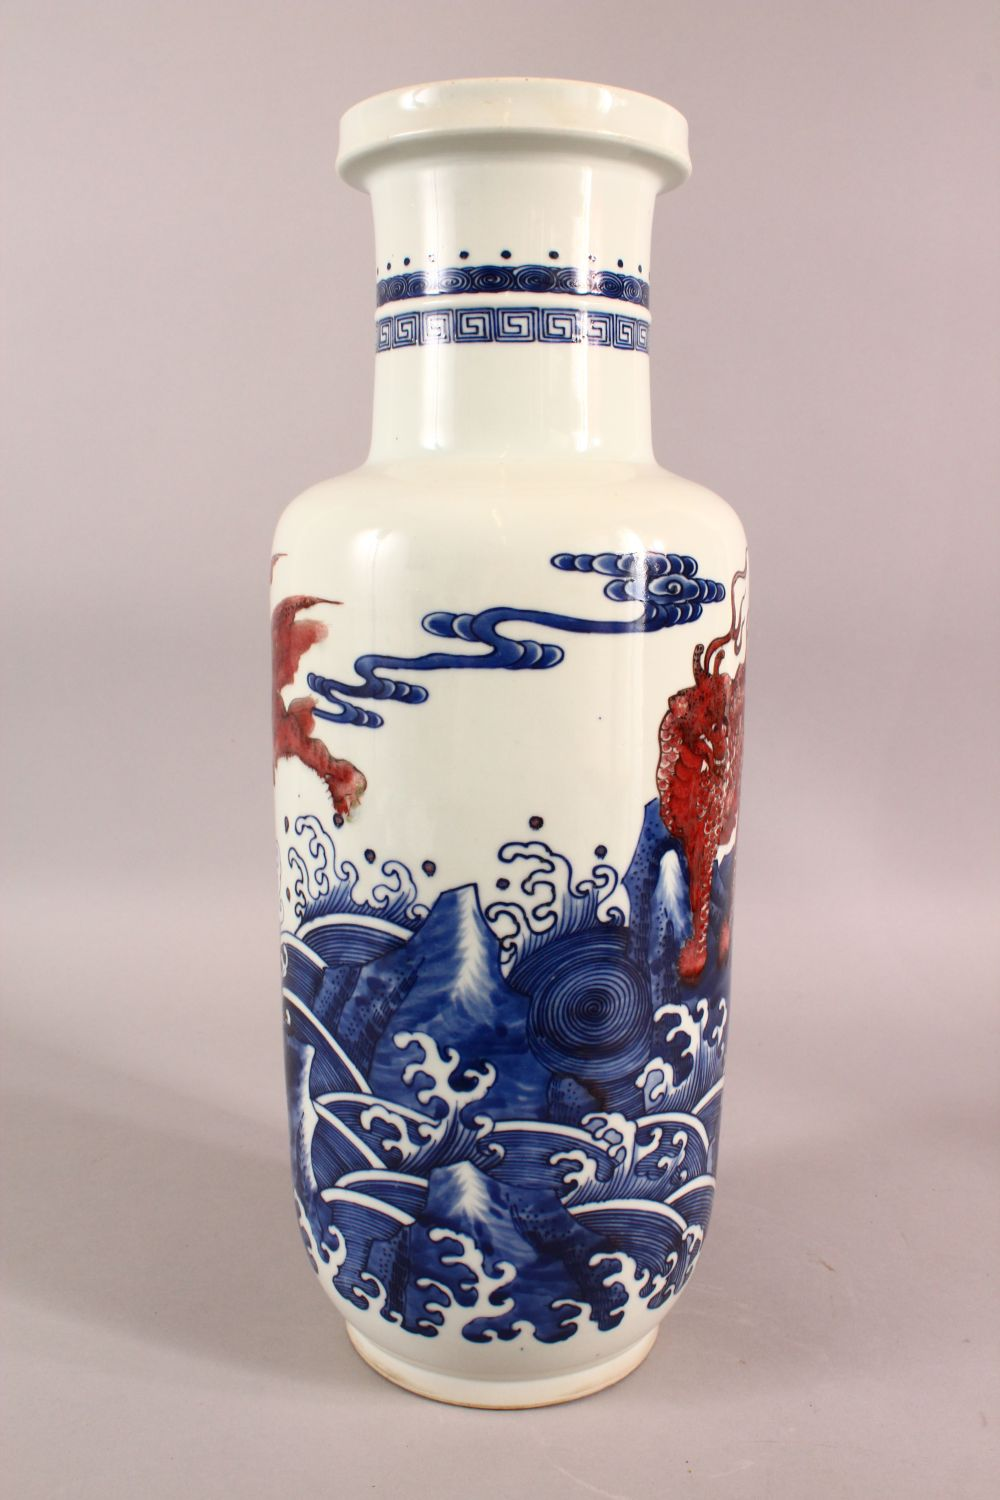 A CHINESE IRON RED, BLUE AND WHITE VASE, the body painted with mythical creatures amongst stylised - Image 4 of 7